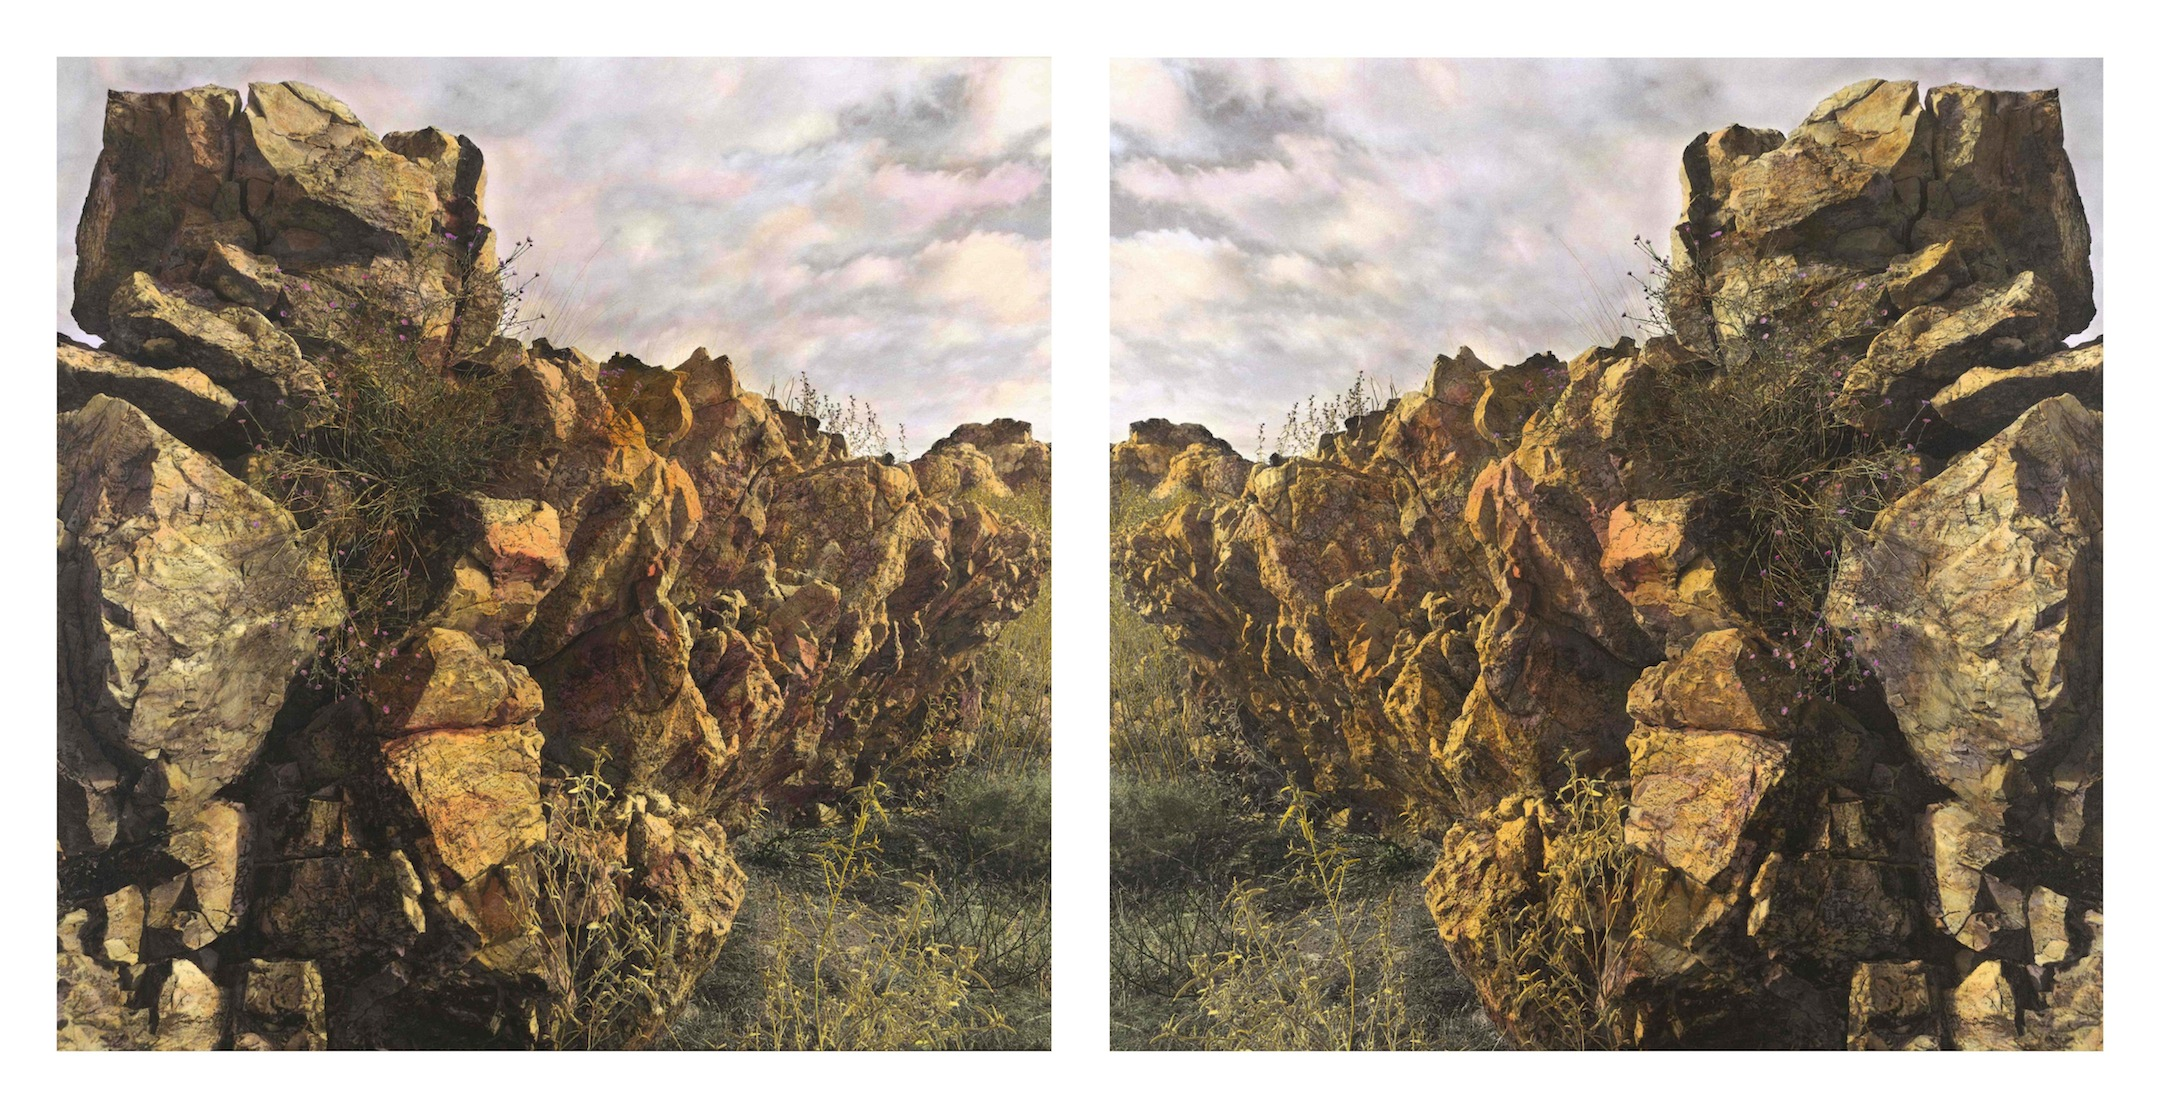 Shelter I & II, quartzite ridge diptych small_LR.jpg